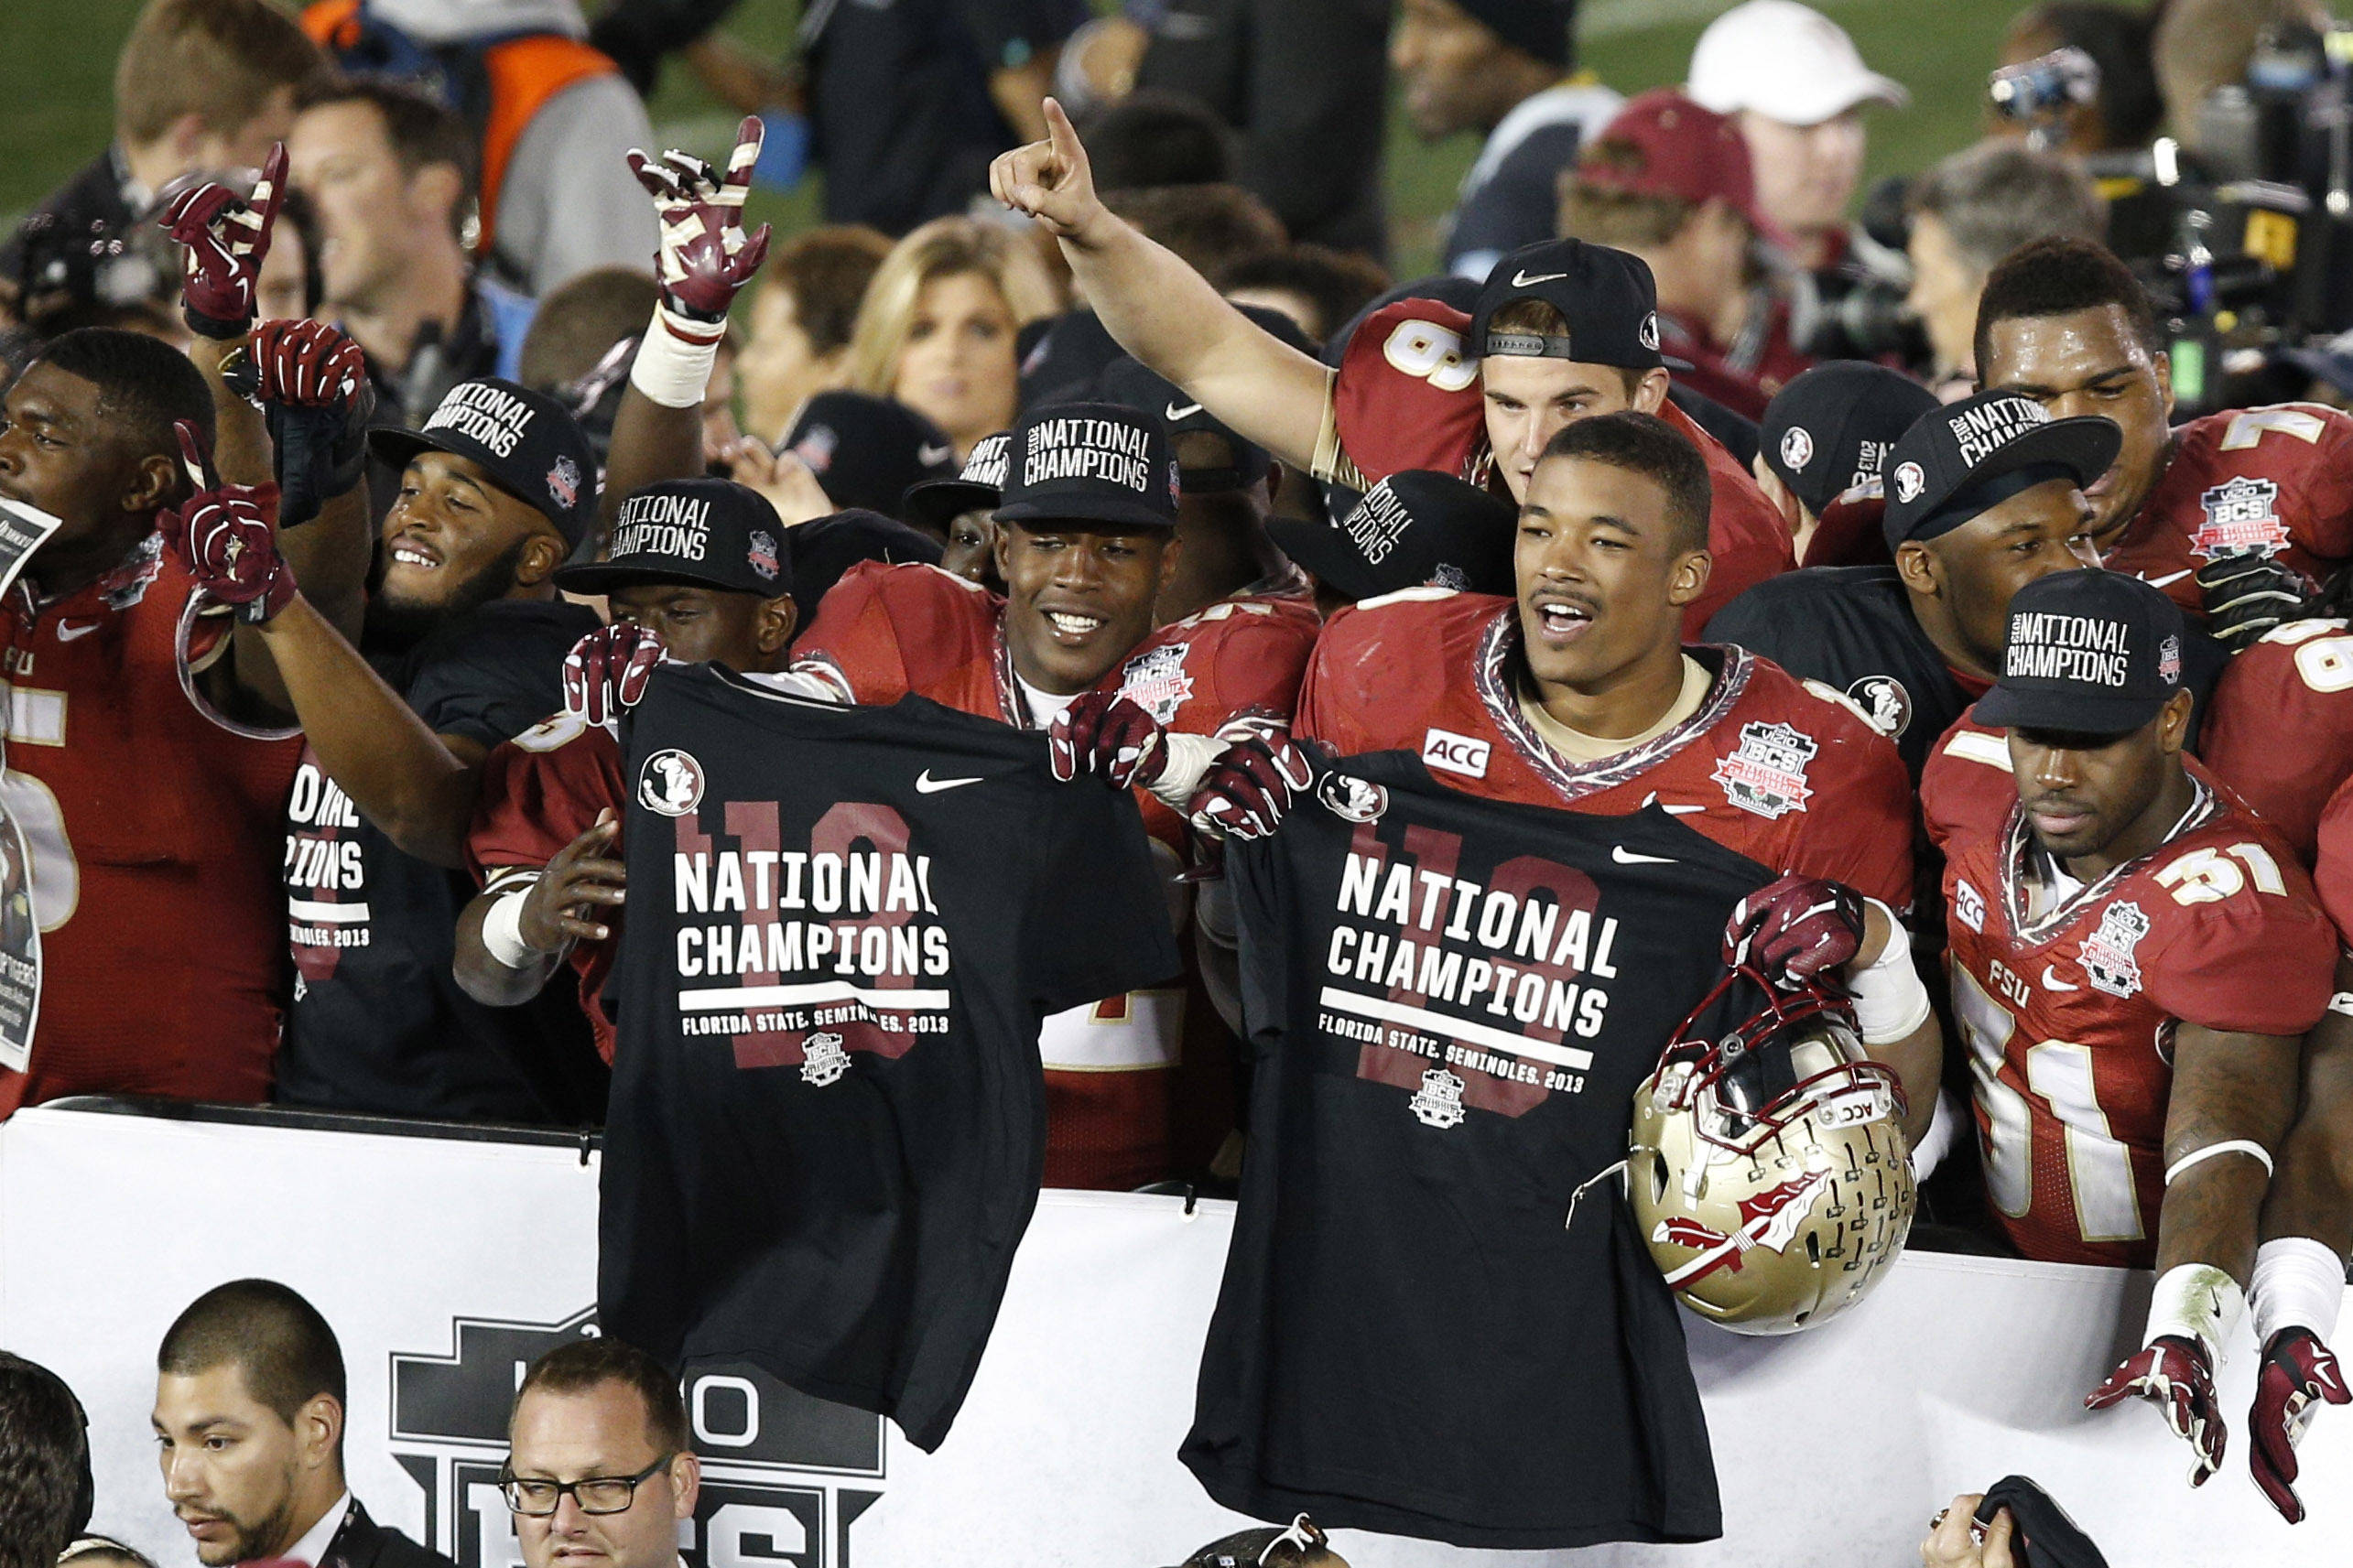 Jan 6, 2014; Pasadena, CA, USA; Florida State Seminoles players celebrate after defeating Auburn Tigers 34-31 in the 2014 BCS National Championship game at the Rose Bowl.  Mandatory Credit: Kelvin Kuo-USA TODAY Sports